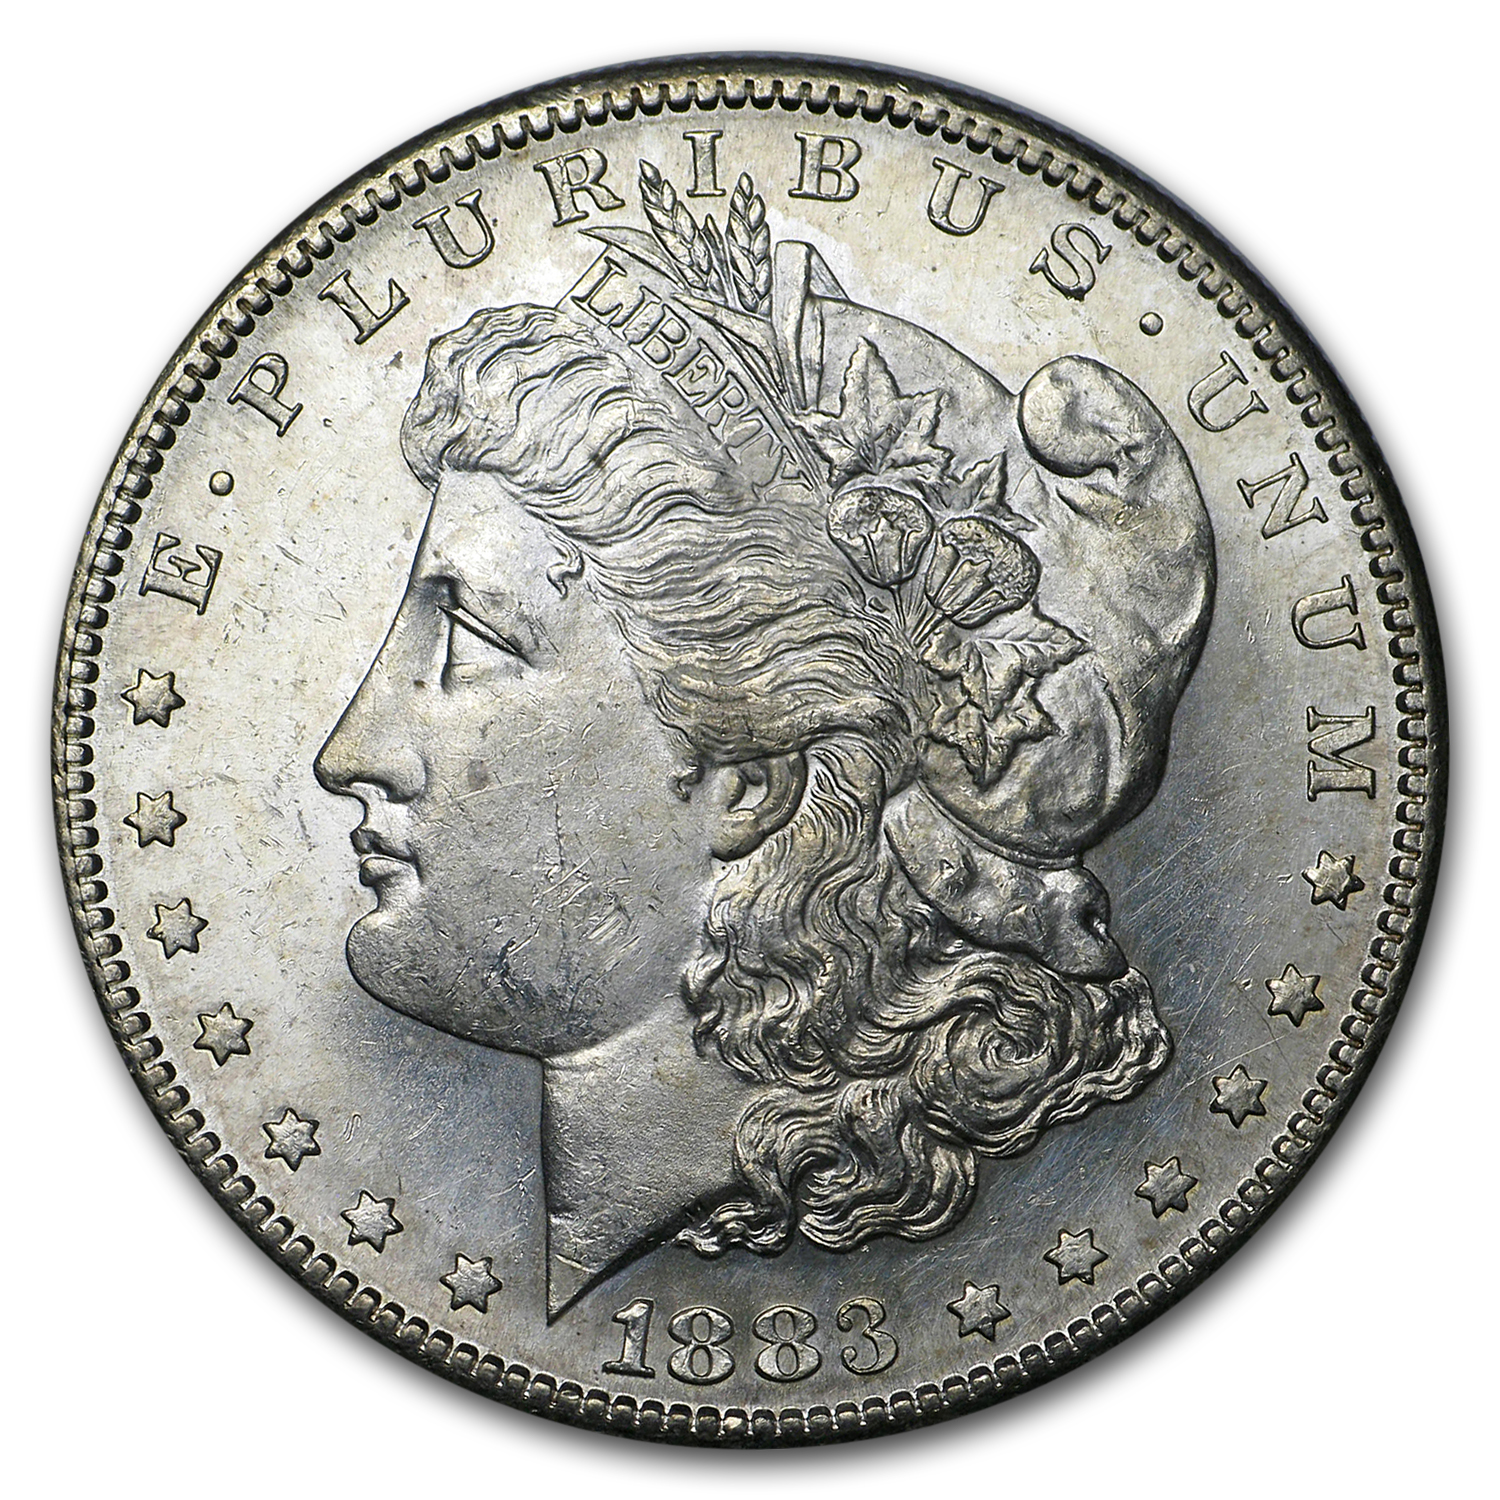 1883-S Morgan Dollar - Brilliant Uncirculated